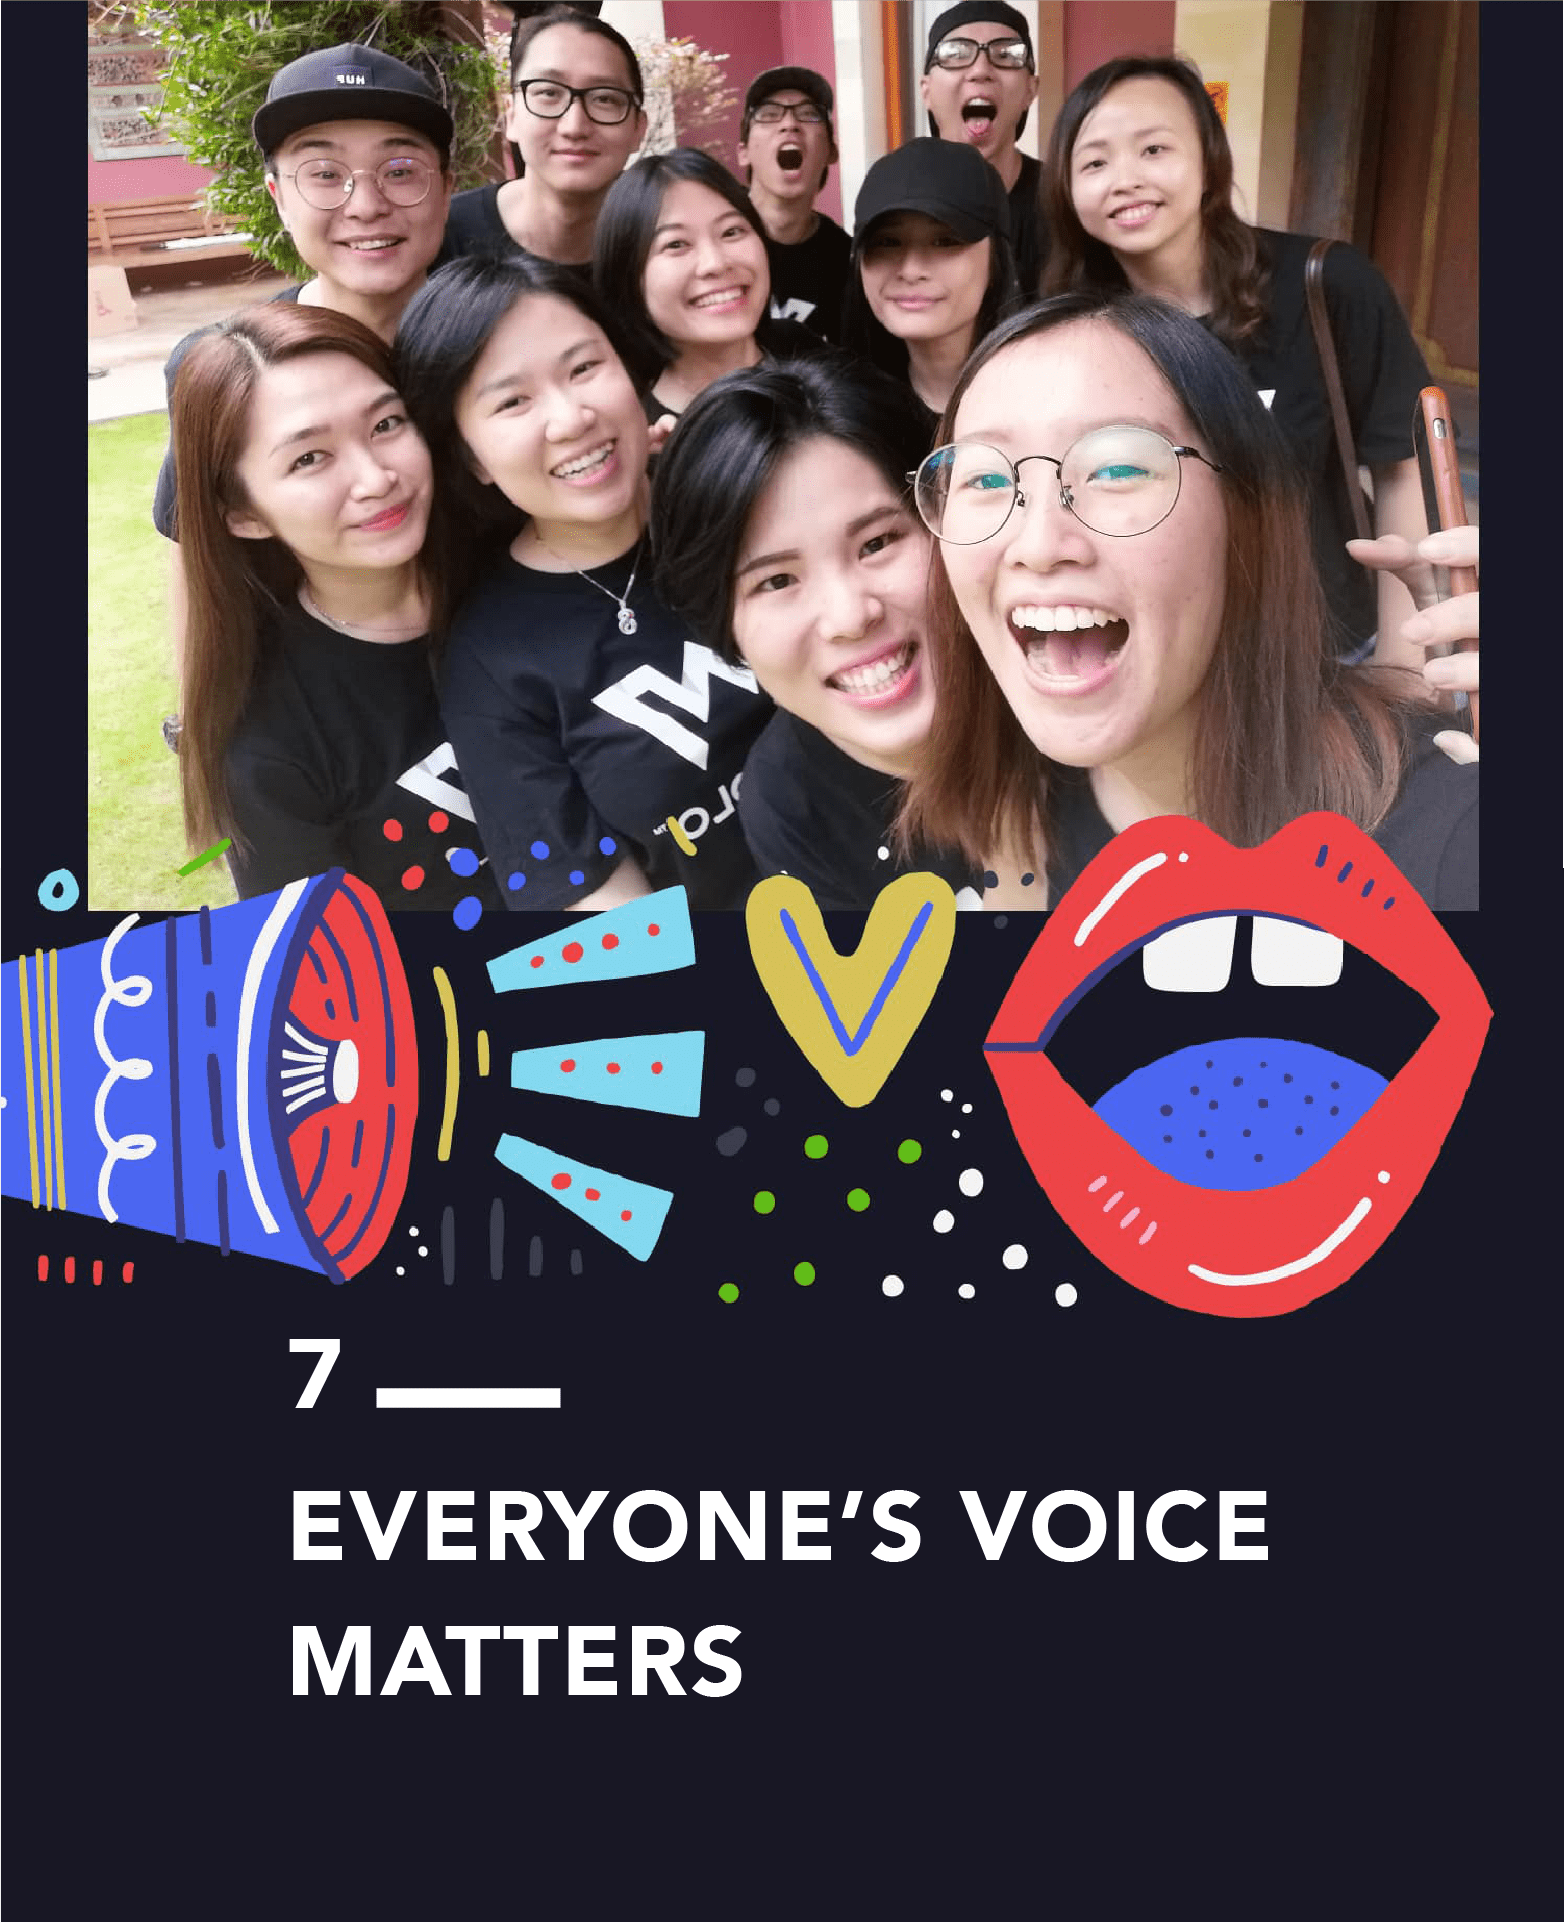 Everyone's Voice Matter